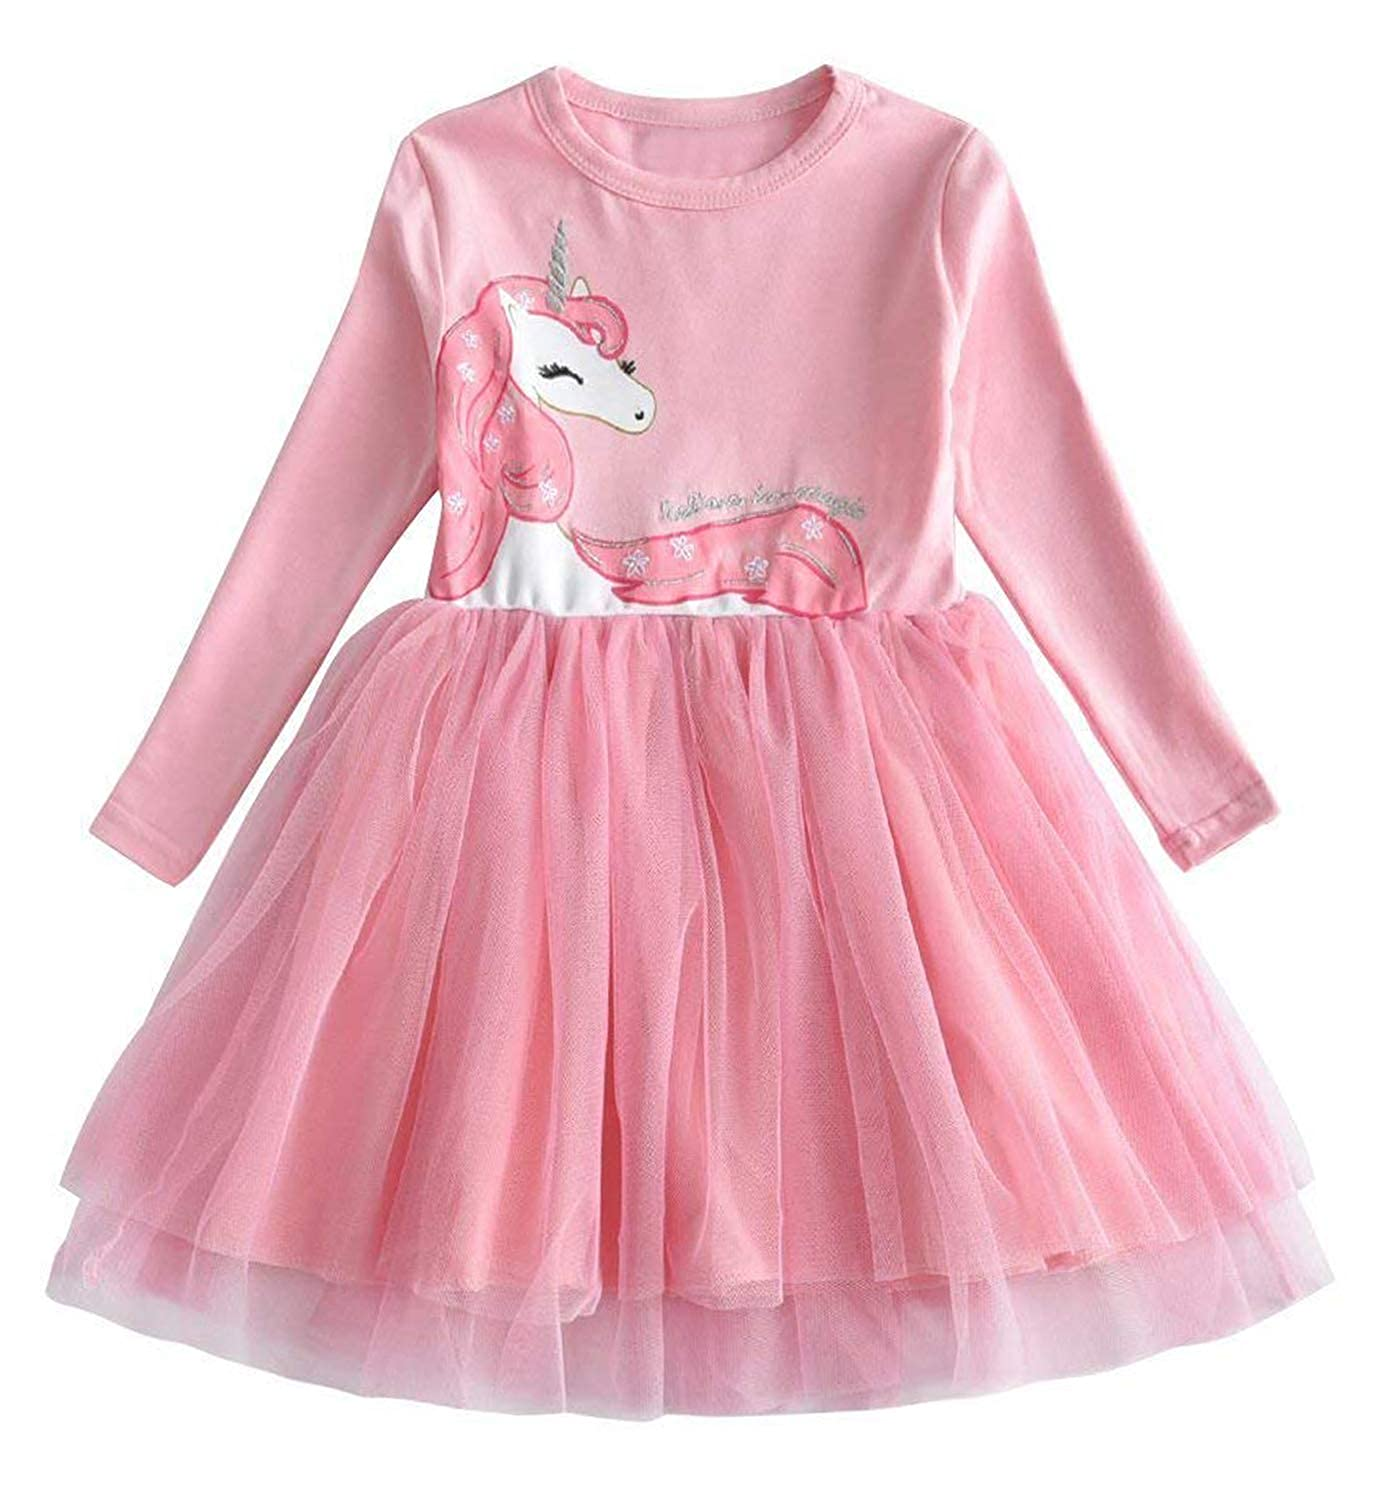 TTYAOVO Toddler Girls Winter Clothes Long Sleeve Girls Dresses Kids 2-8 Years